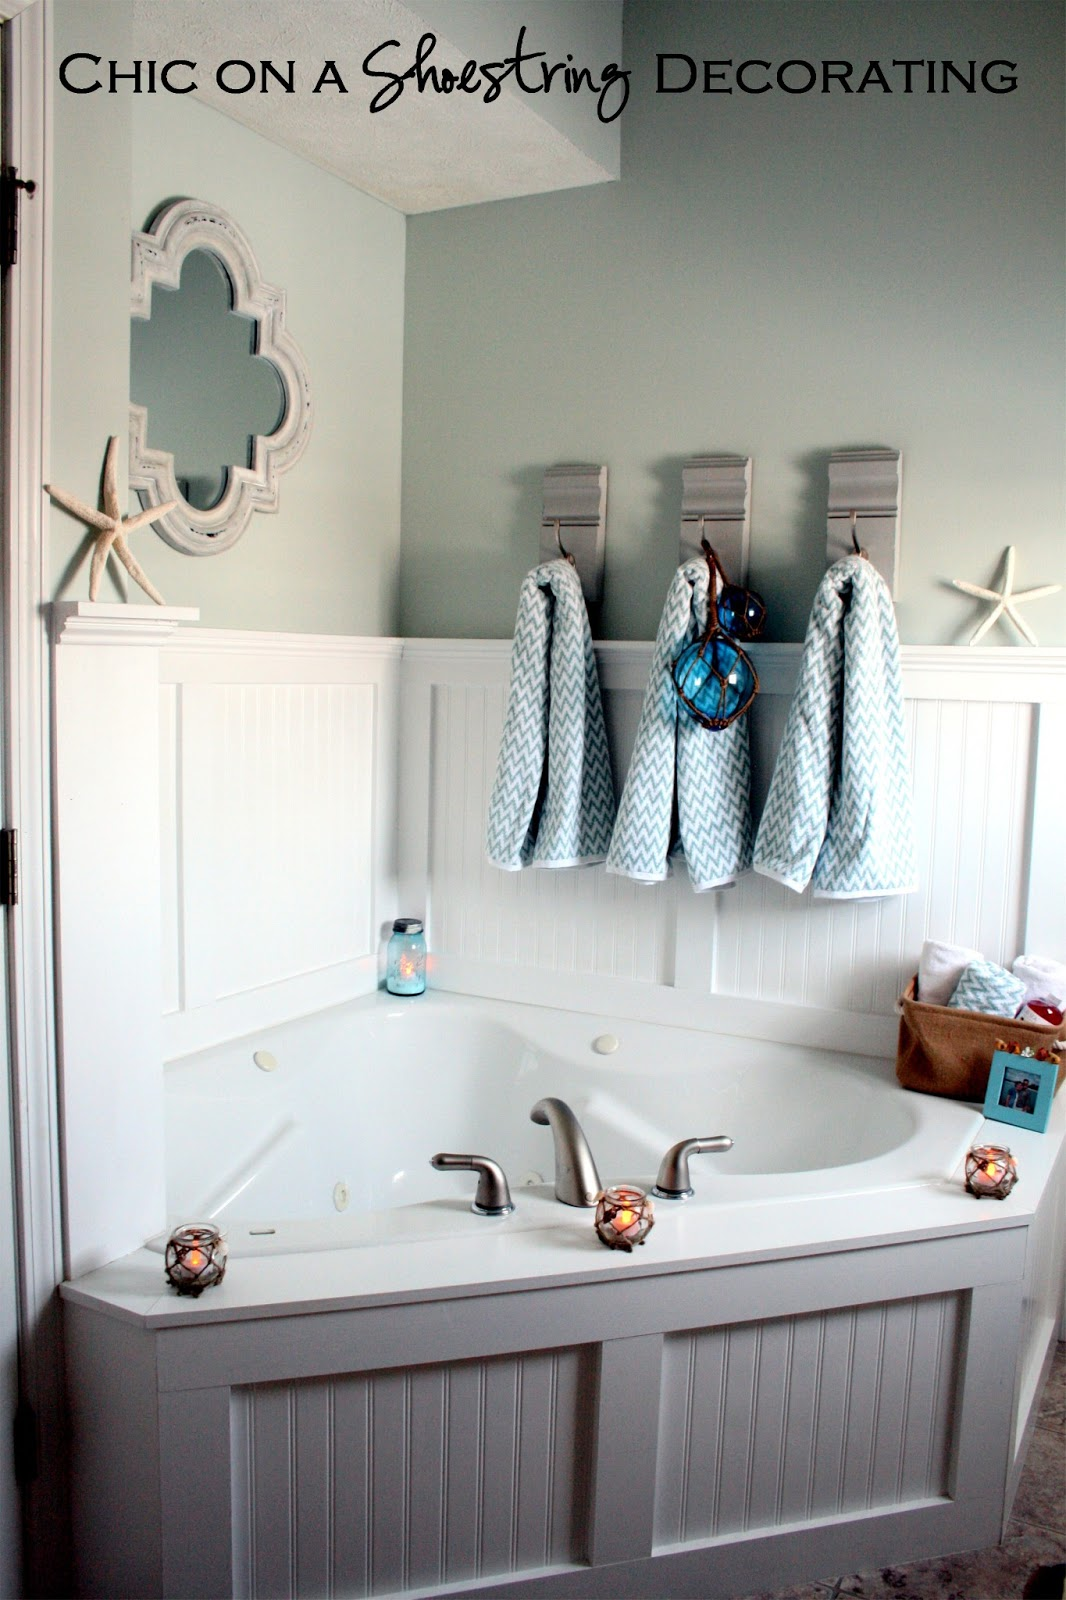 Chic on a shoestring decorating beachy bathroom reveal - Decorated bathrooms ...